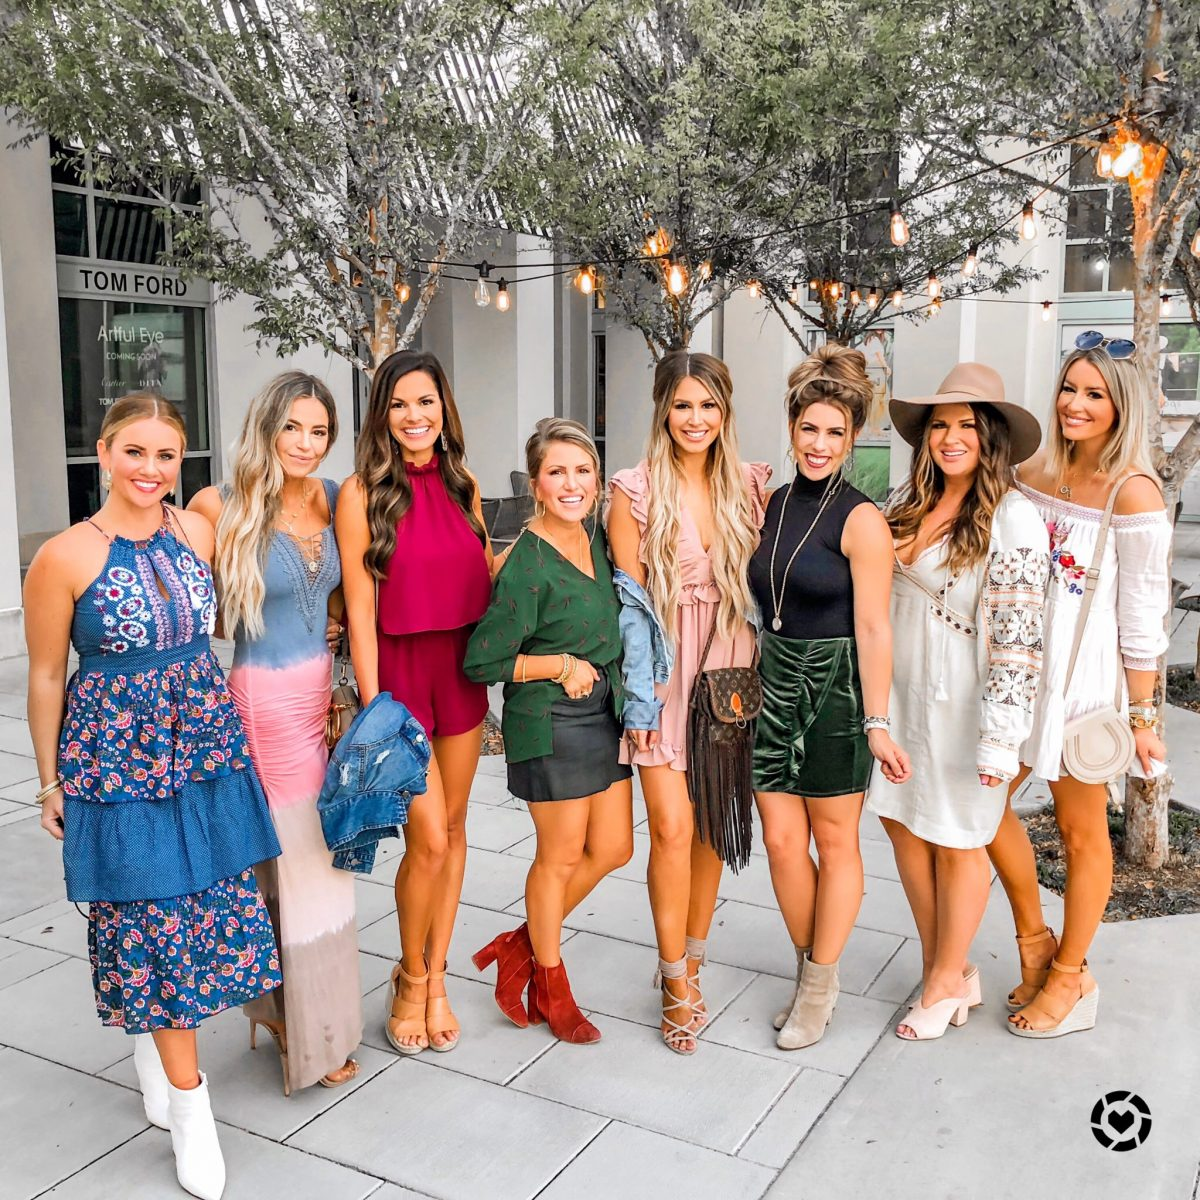 a girl's weekend at 30a where to stay in rosemary beach 30a the best hotels in 30a area 30a travel guide what to do in 30a where to eat on vacation in 30a the best restaurants in 30 a rosemary beach travel guide girls trip to rosemary beach the pointe on 30a rosemary beach